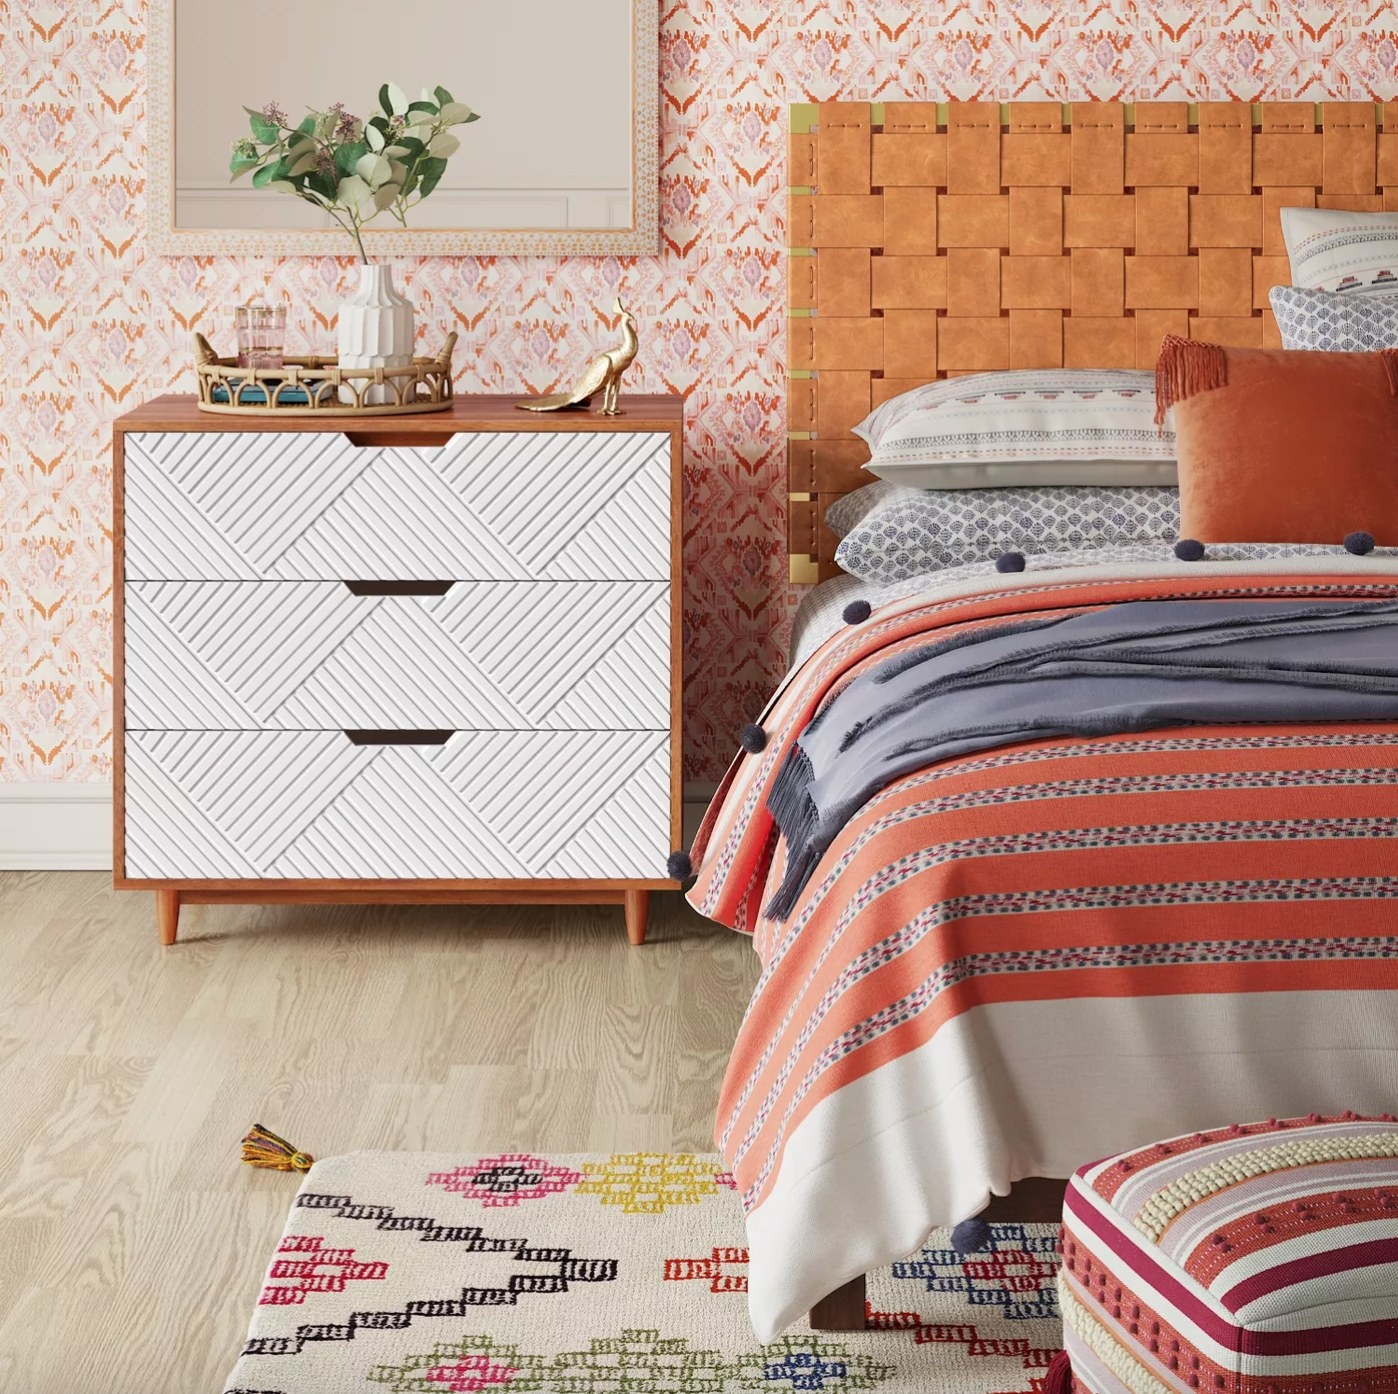 The wood dresser with white drawers